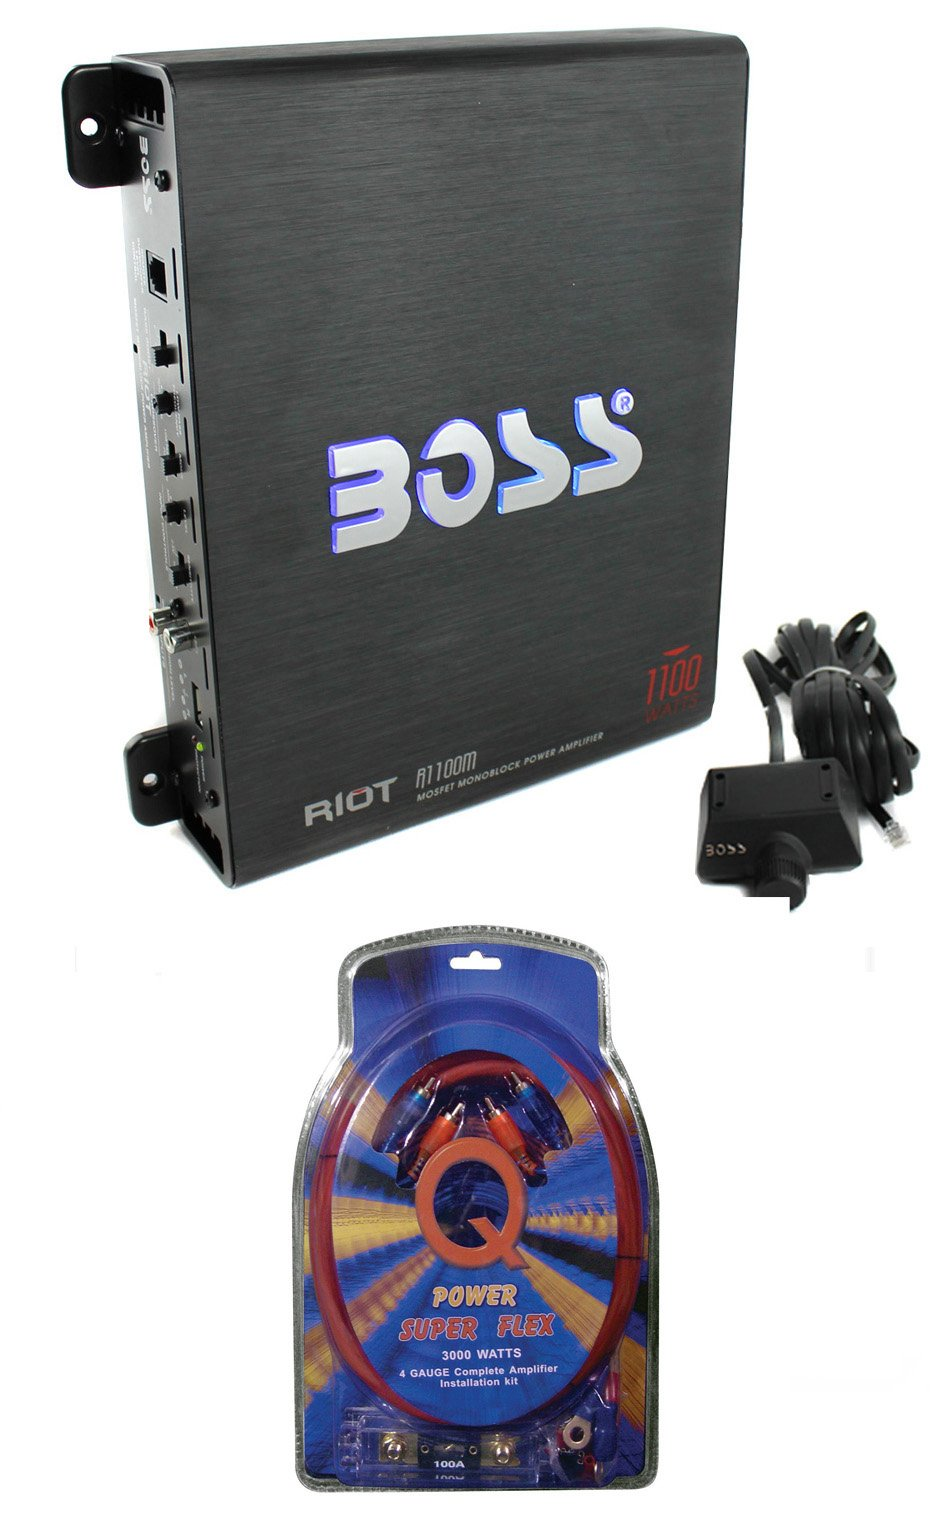 BOSS Audio Riot R1100M Mono Car Amplifier Amp + Sub Bass Remote + Wiring Kit